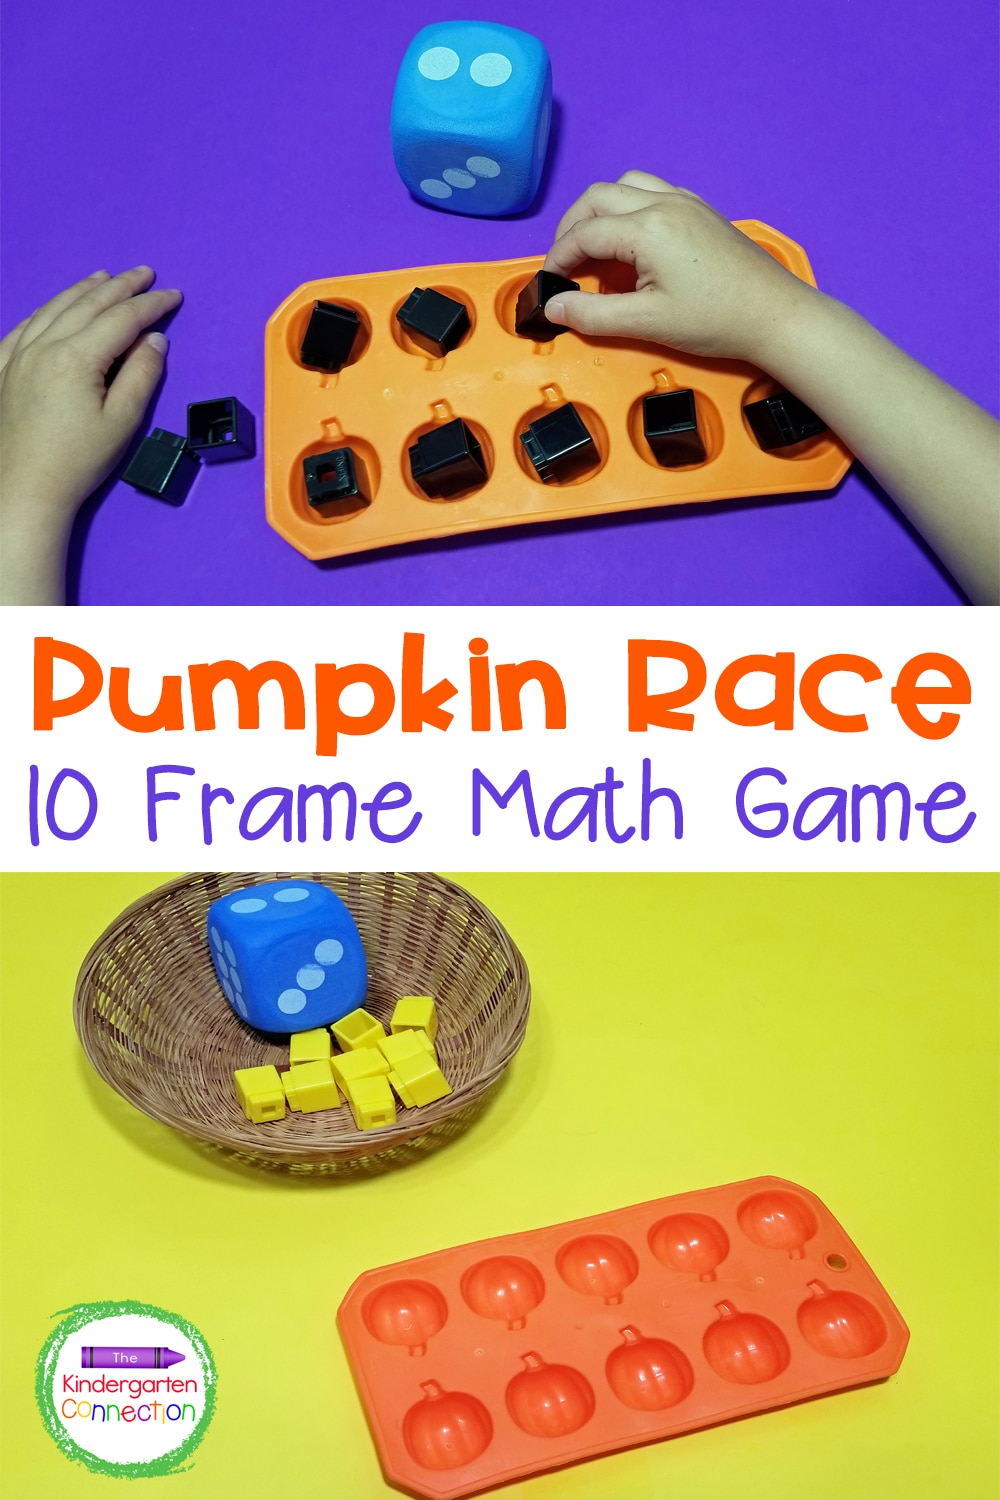 Your students will love this Pumpkin Ten Frame Math Game as they race to see who gets to 10 first while strengthening counting skills!